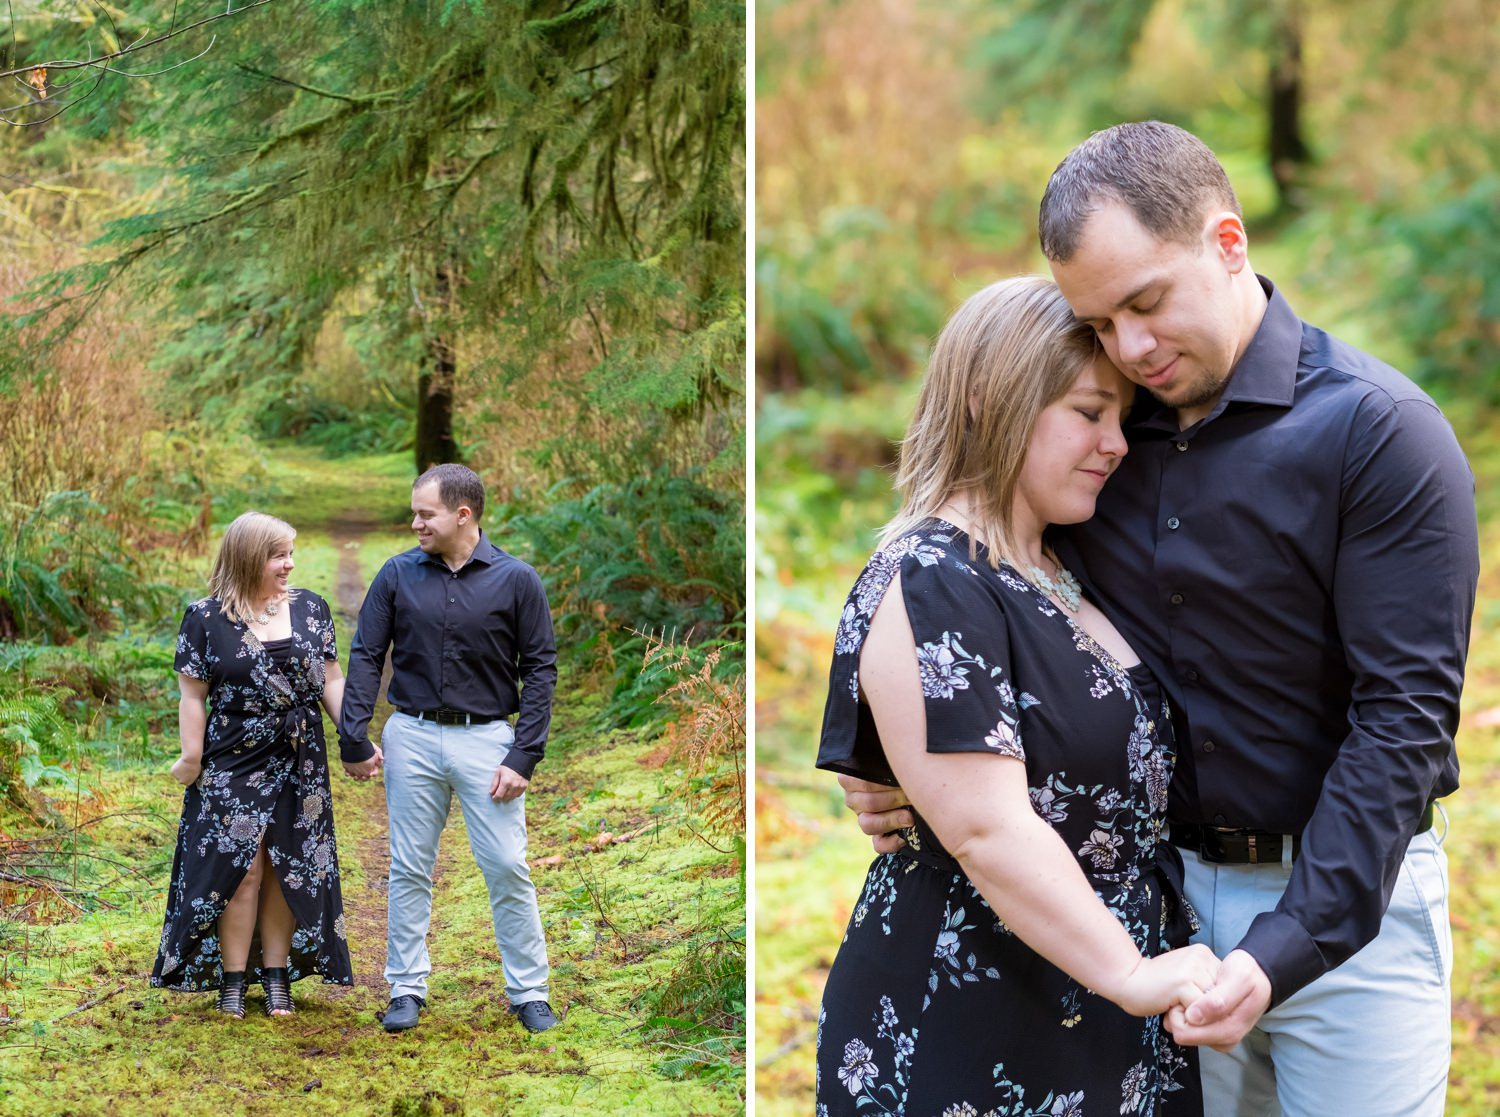 oregon-coast-engagement-pictures-005 Oregon Coast Engagement Pictures | North Fork Smith River Adventure Engagement | Sweet Creek Falls | Kaylee & Wyatt